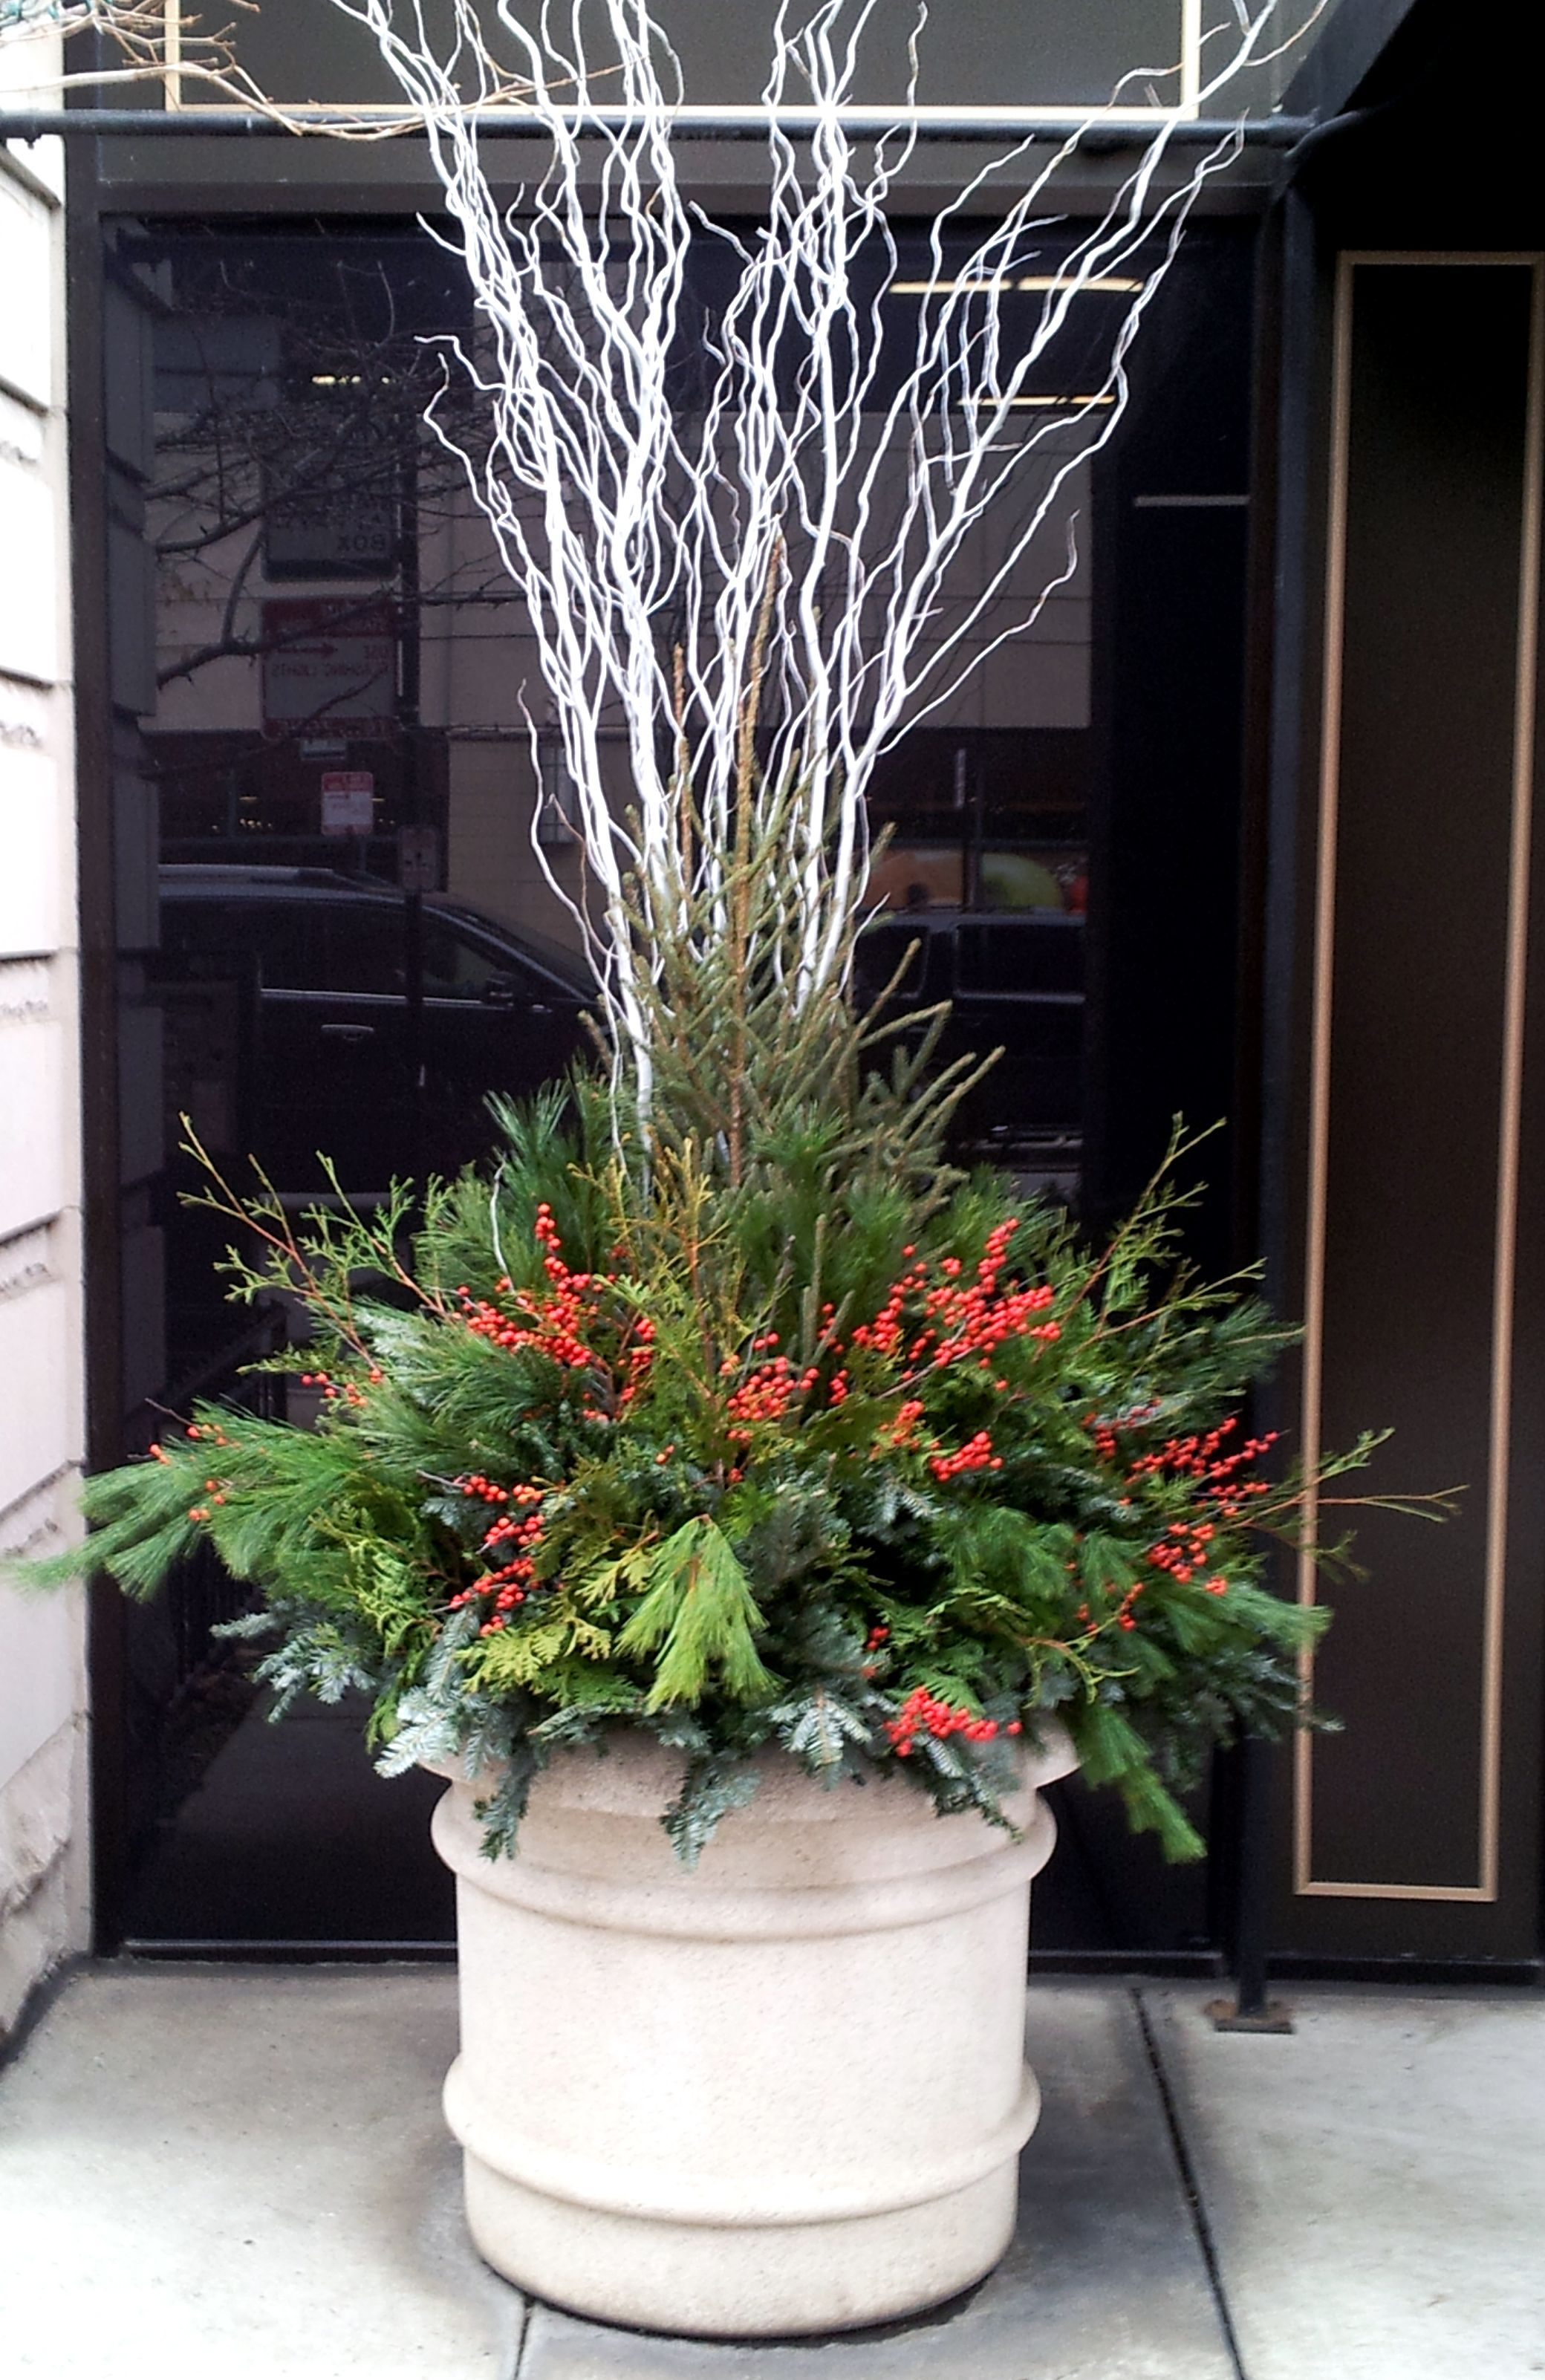 Holiday | Winter | Decor | Containers | Planters | Evergreens | Planting | Display | Urban | Garden | Landscape | Design | Front Entrance